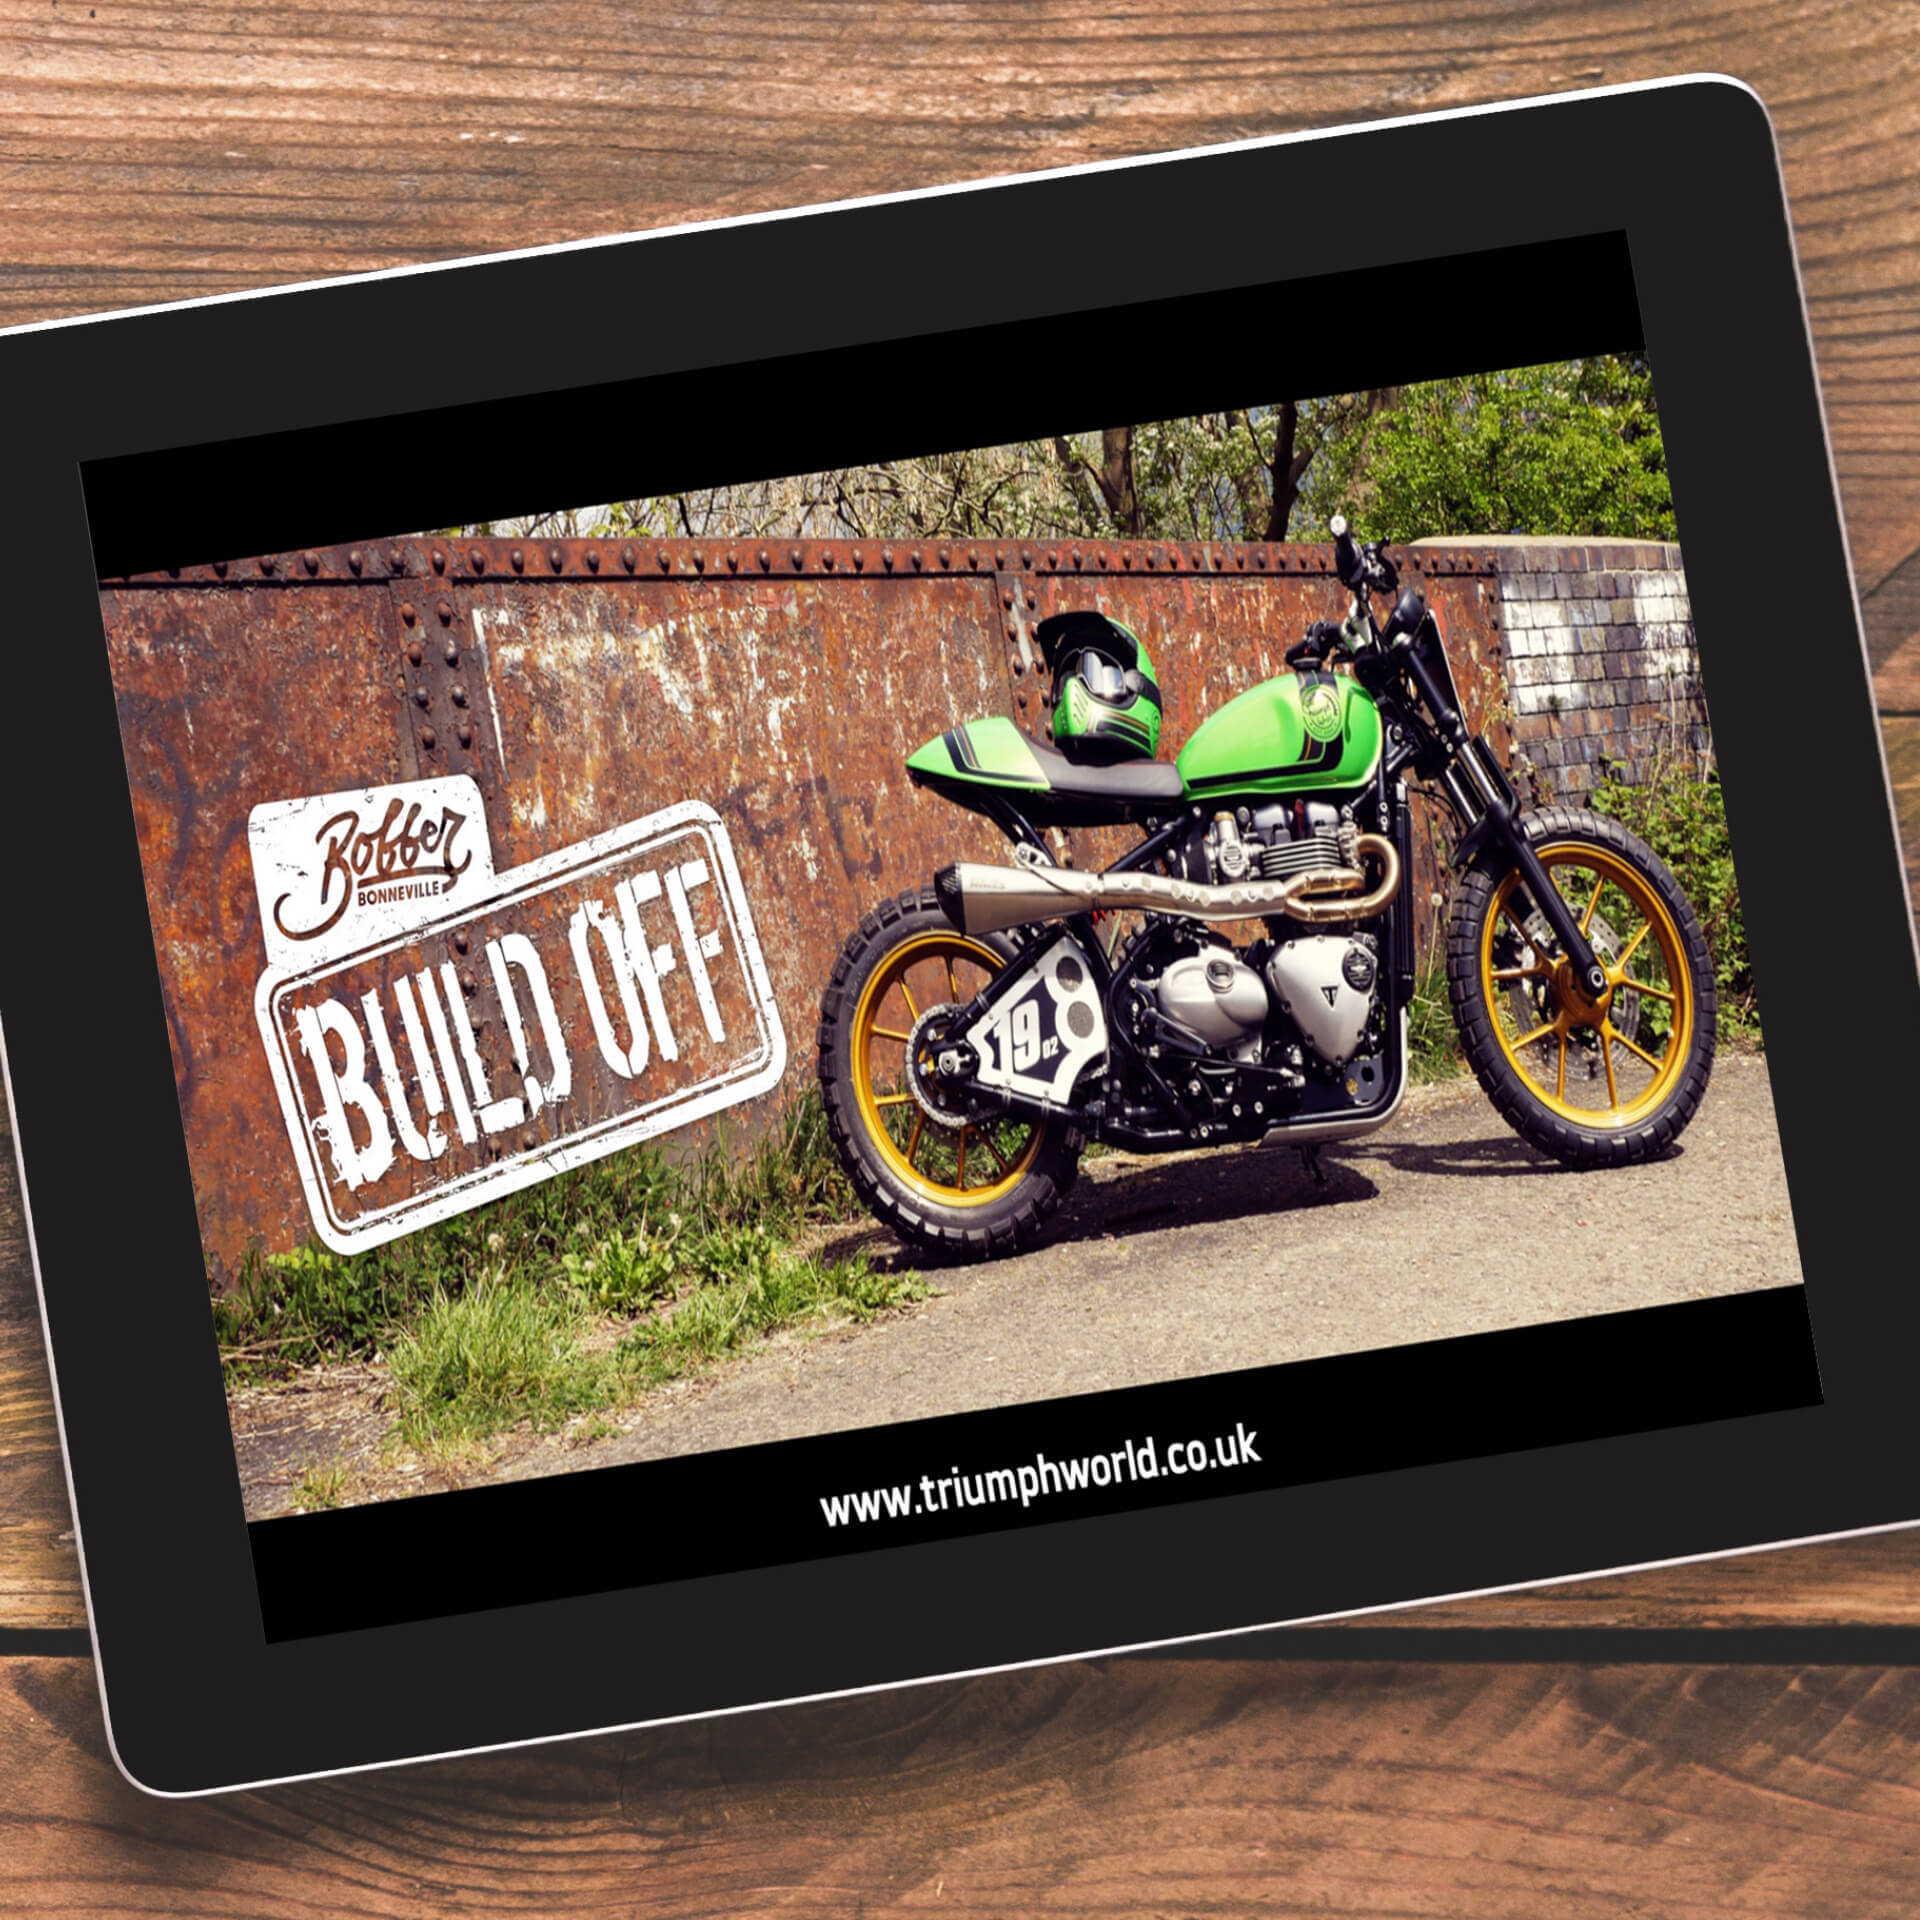 Bonnevile Bobber Video on tablet